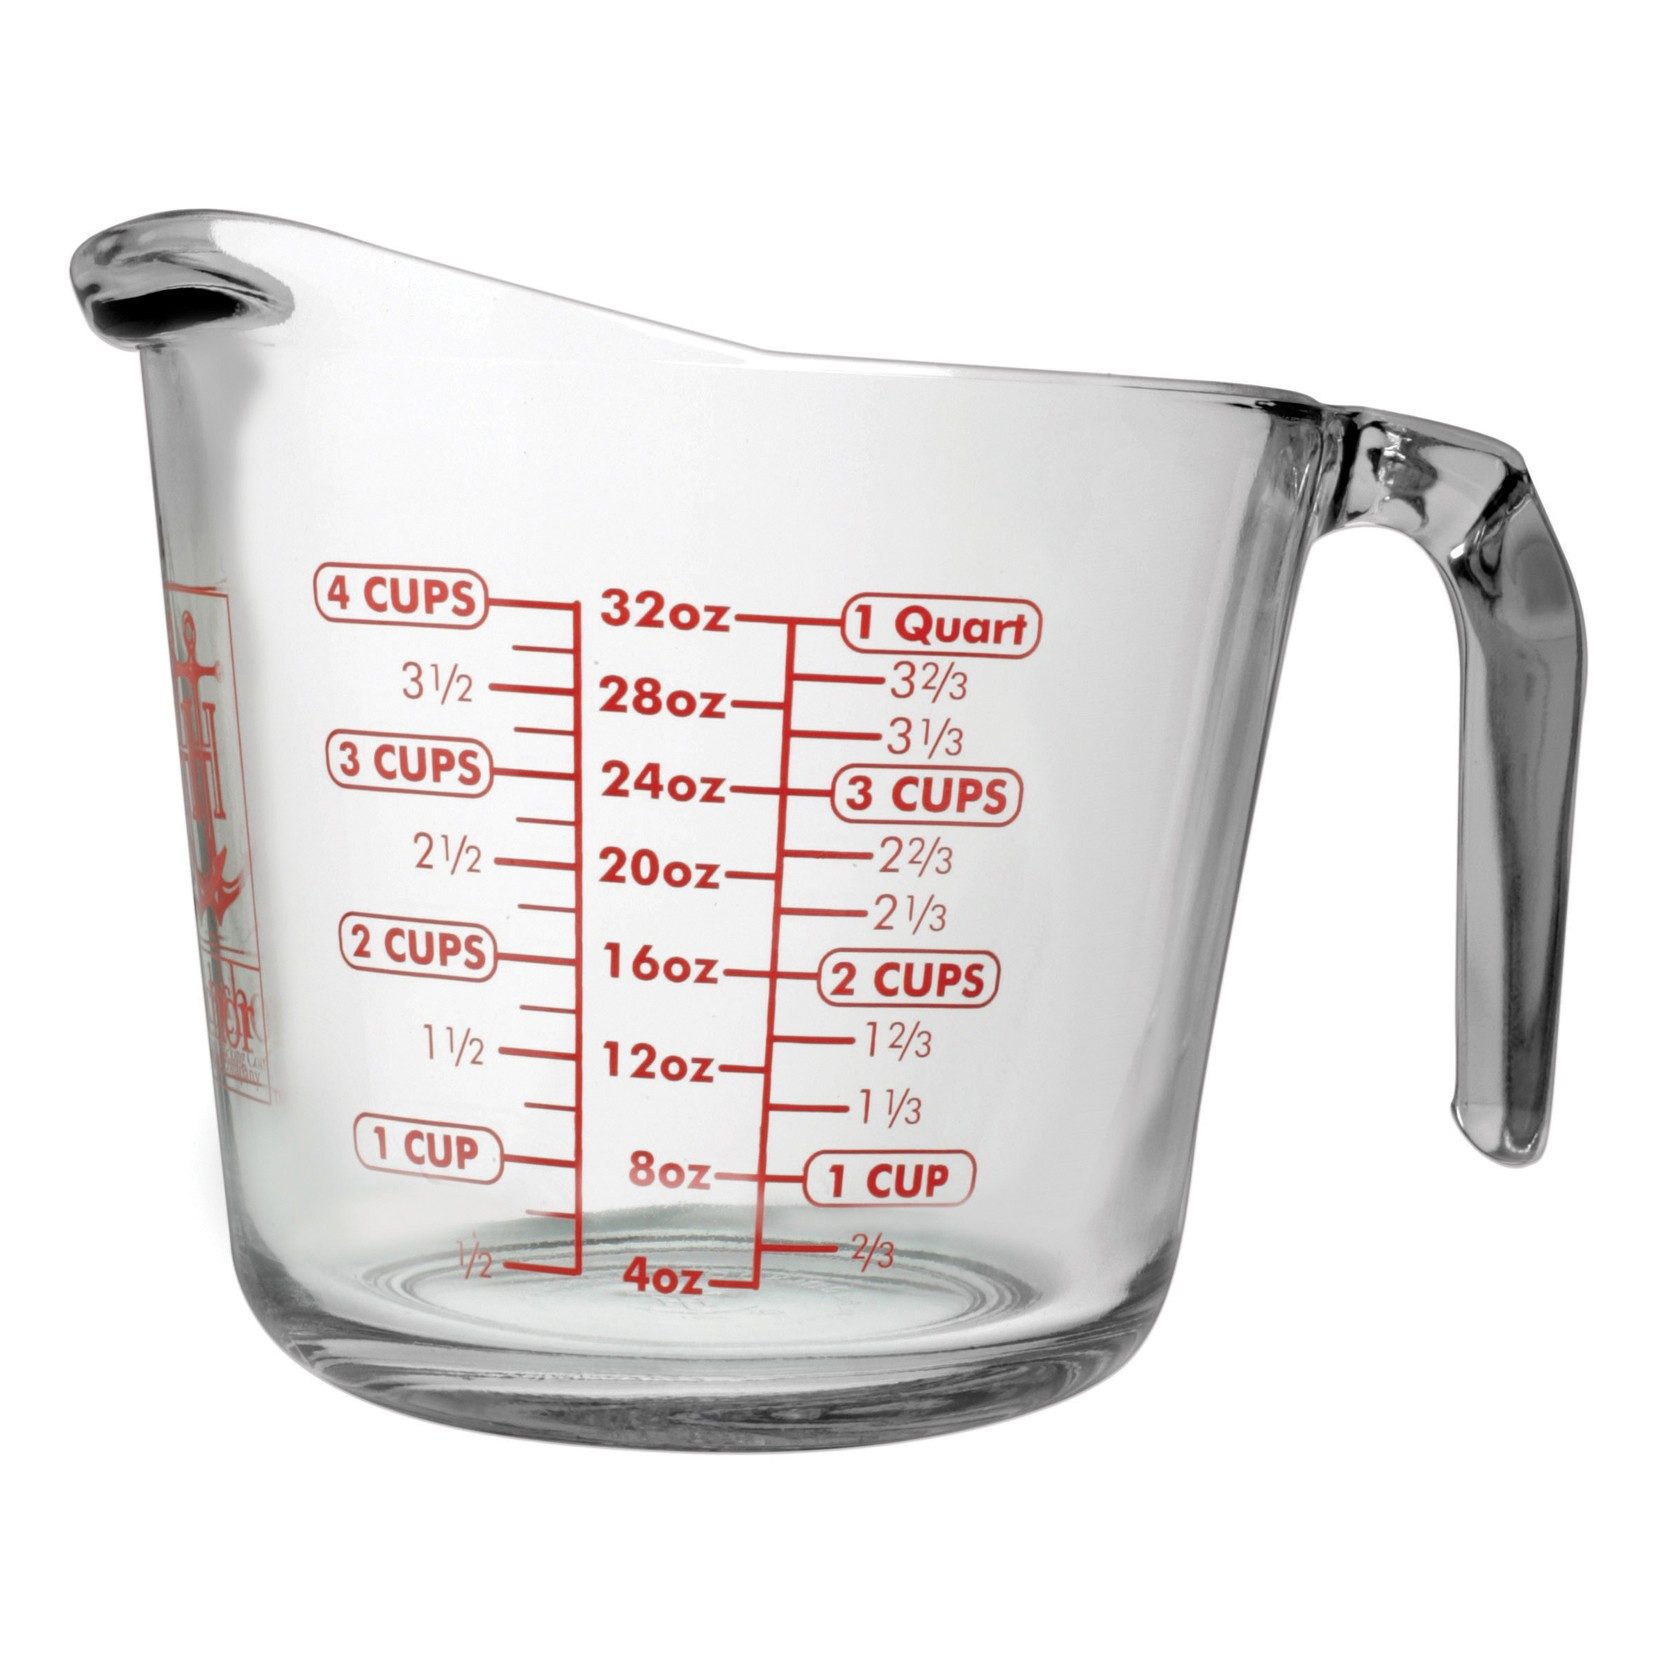 Australian Cup Measurement Silhouette Clipart Vintage Measuring Cup Clipground